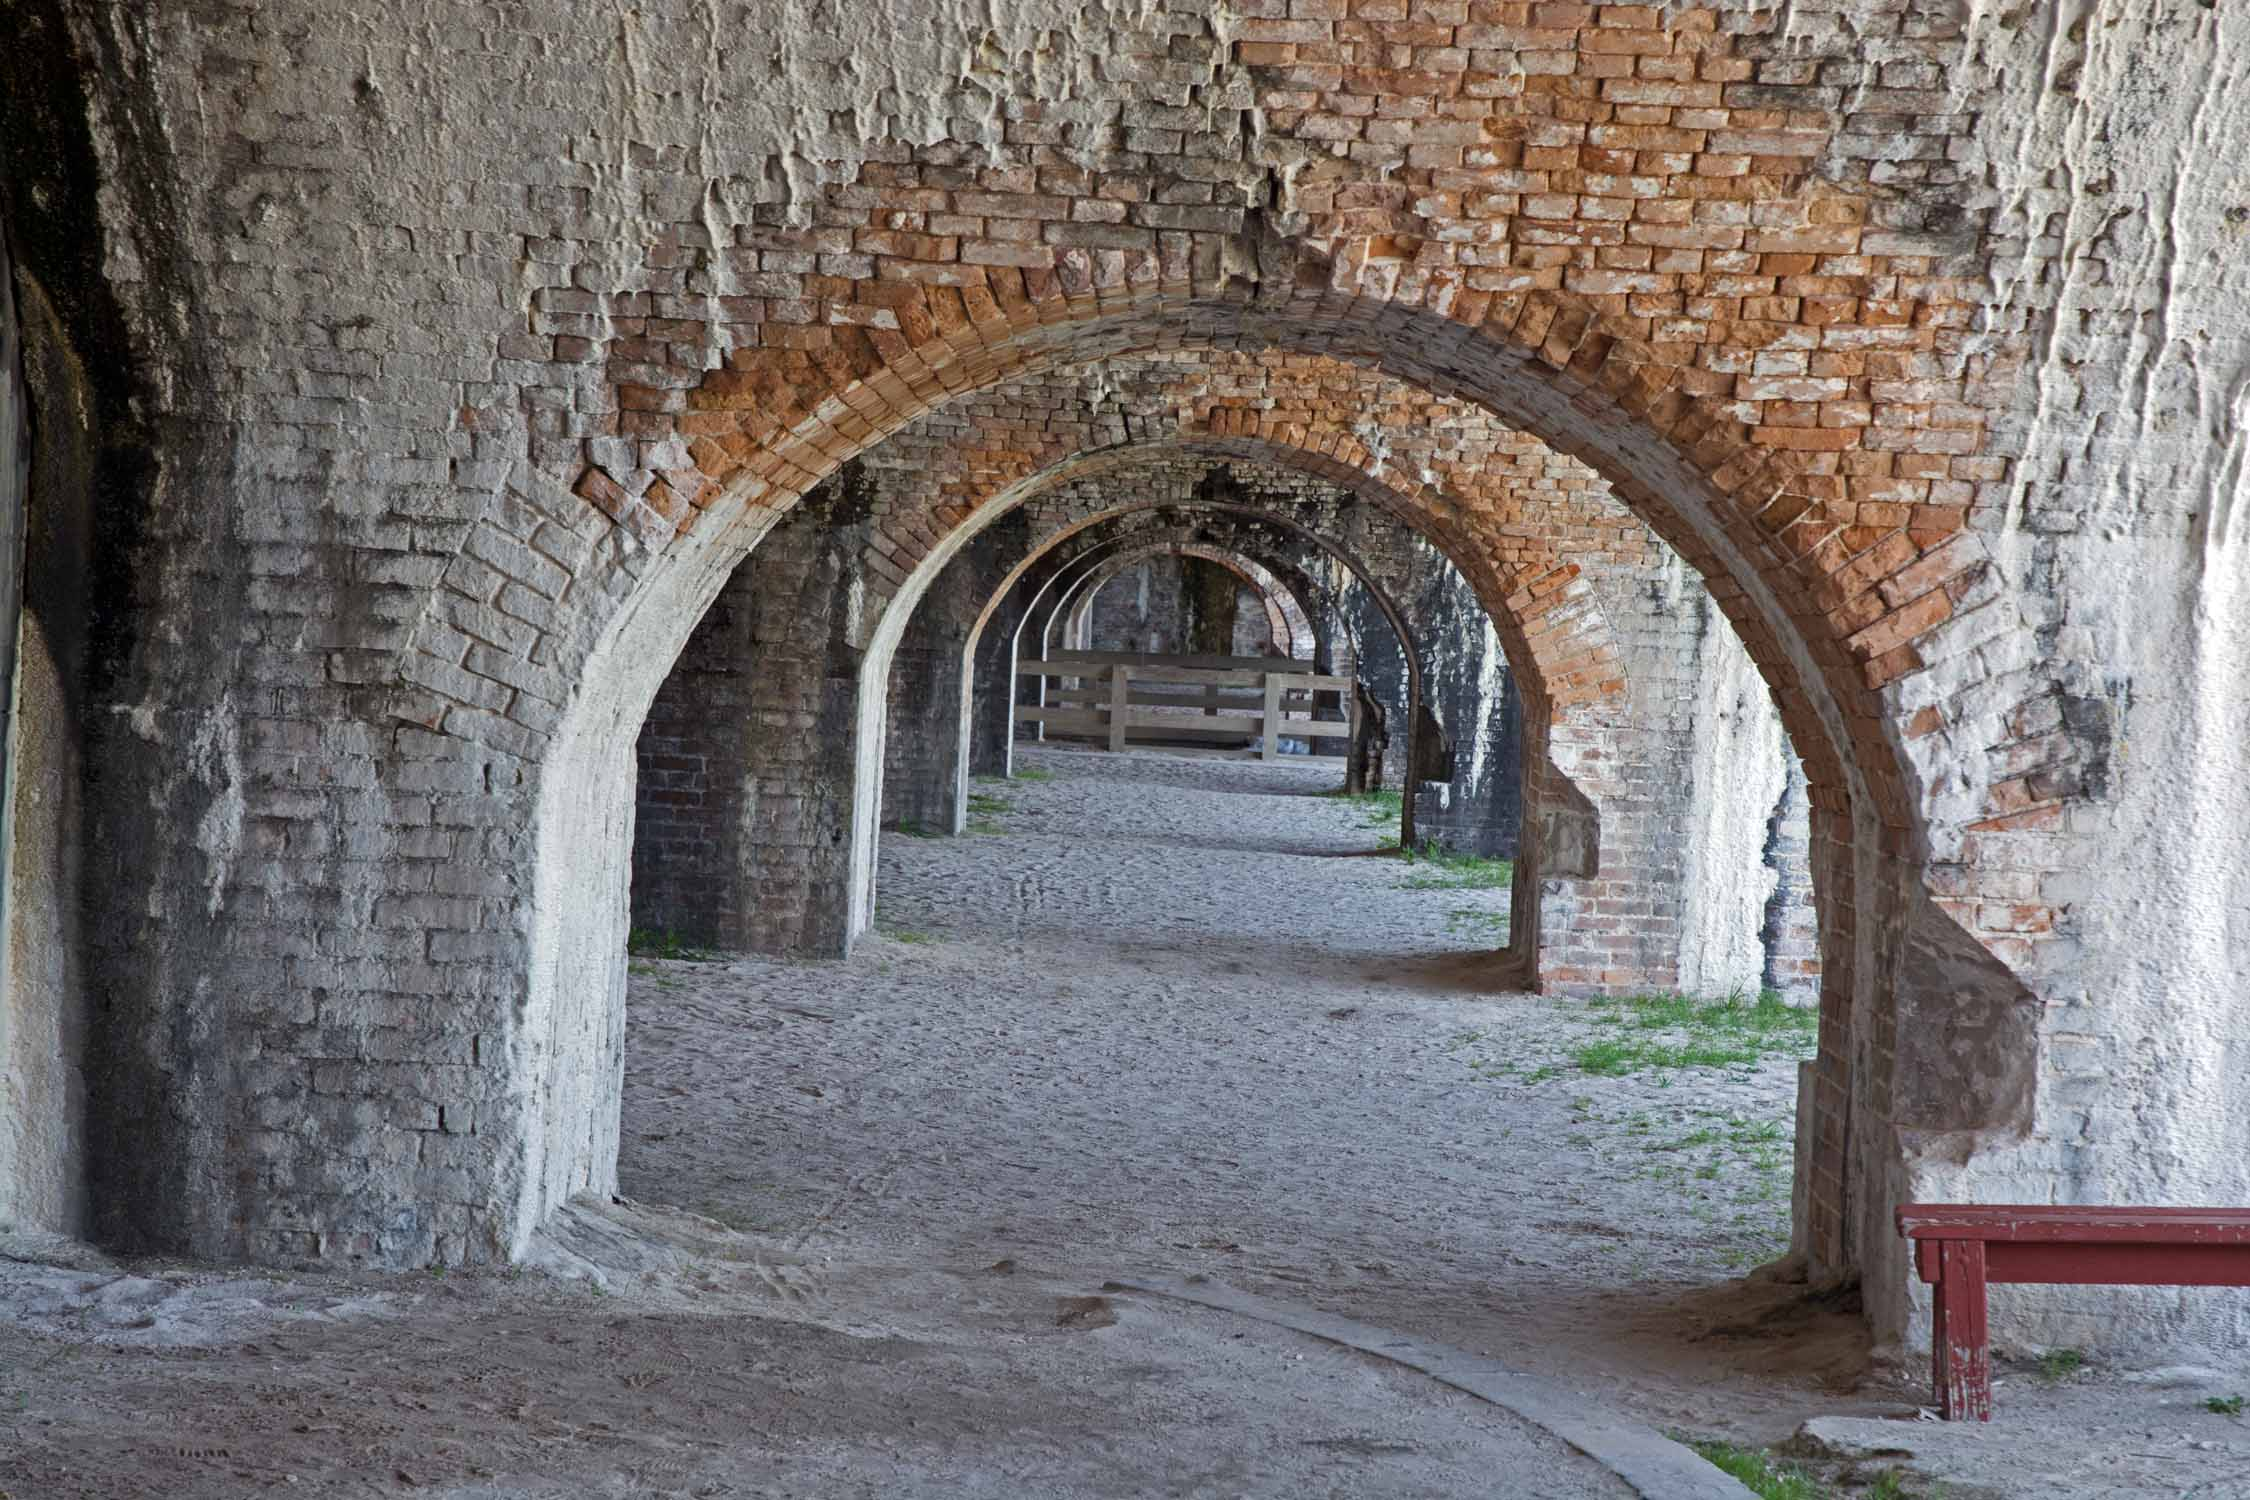 This is Fort Pickens.  This is now a screen saver image for my laptop.